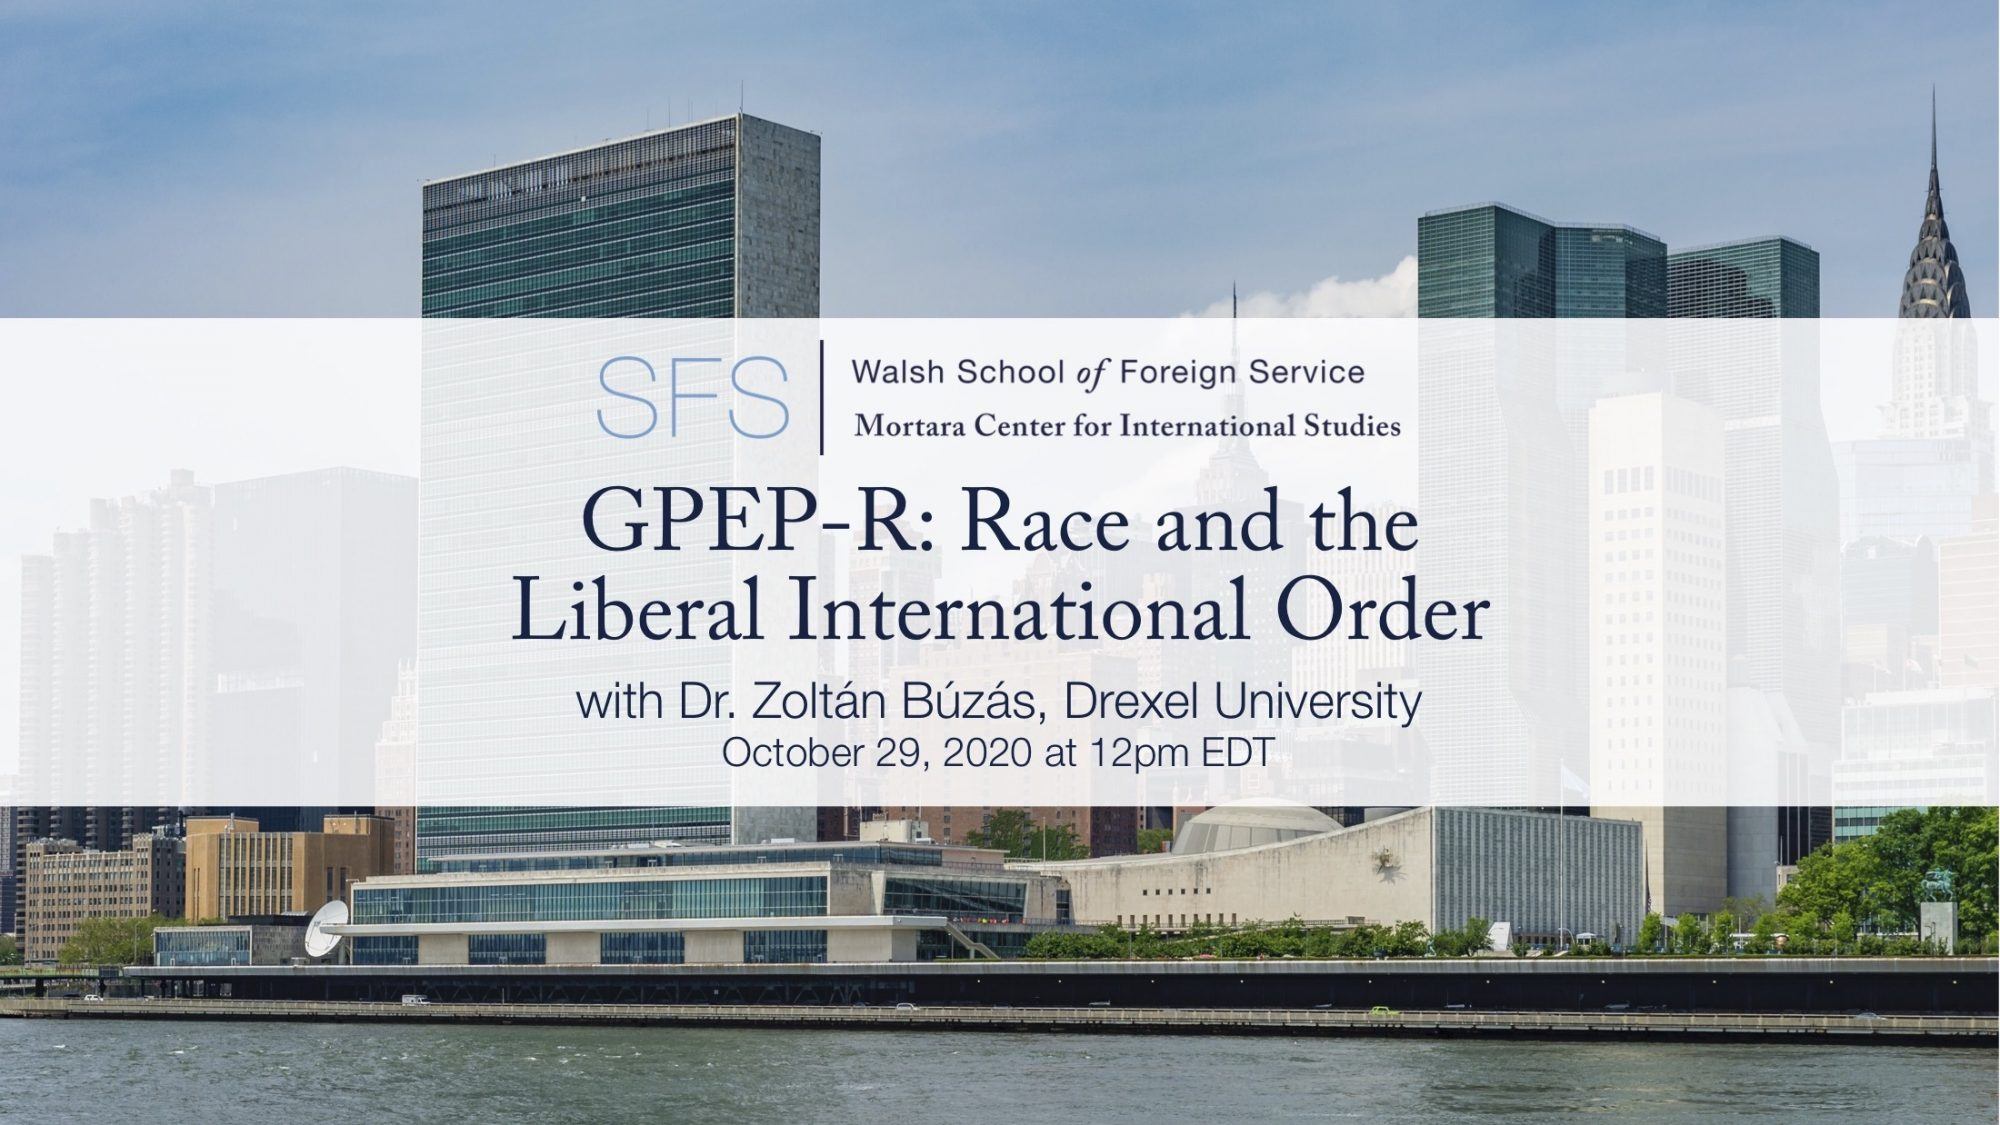 GPEP-R: Race and the Liberal International Order with Dr. Zoltan Buzas, Drexel University, December 3 at 12pm EST